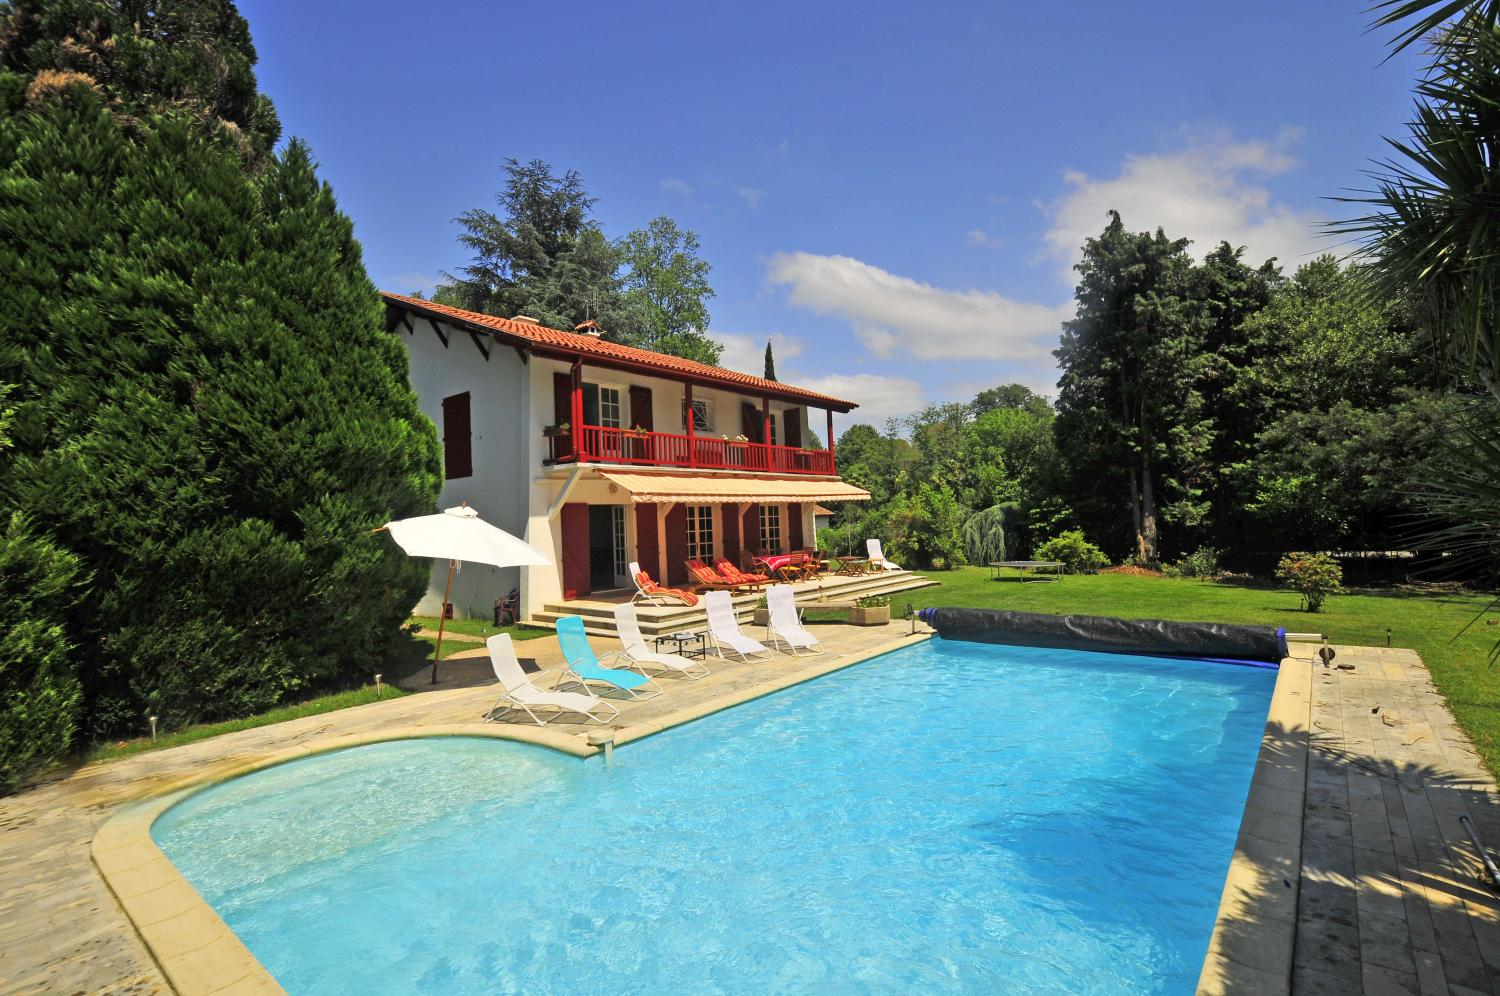 Biarritz family town villa with heated pool